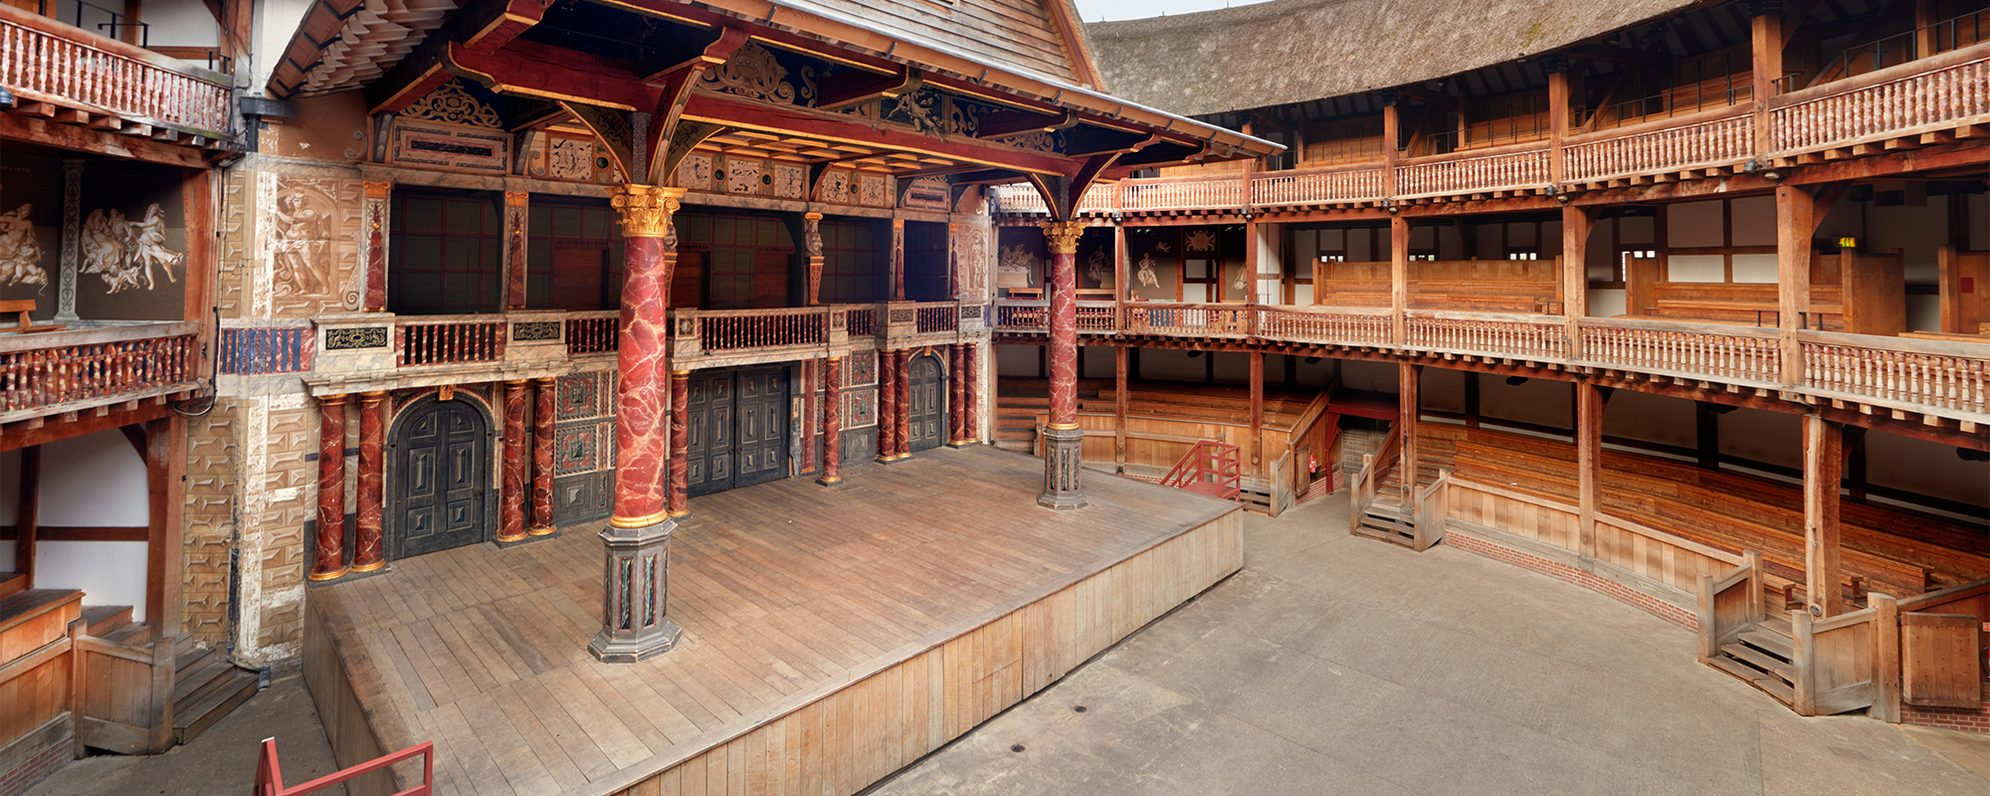 A view of an empty Globe Theatre, the image pans across the stage and seating bays.